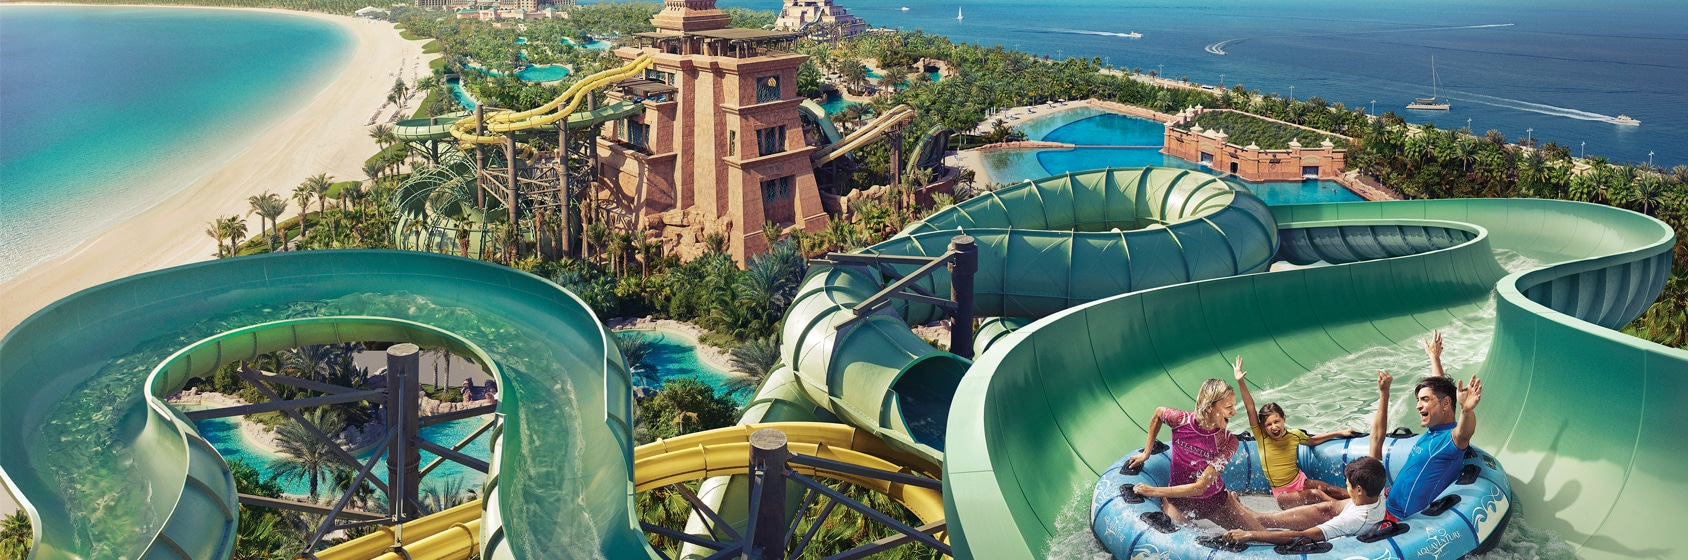 Three World Class Skaters Take Over Aquaventure Waterpark